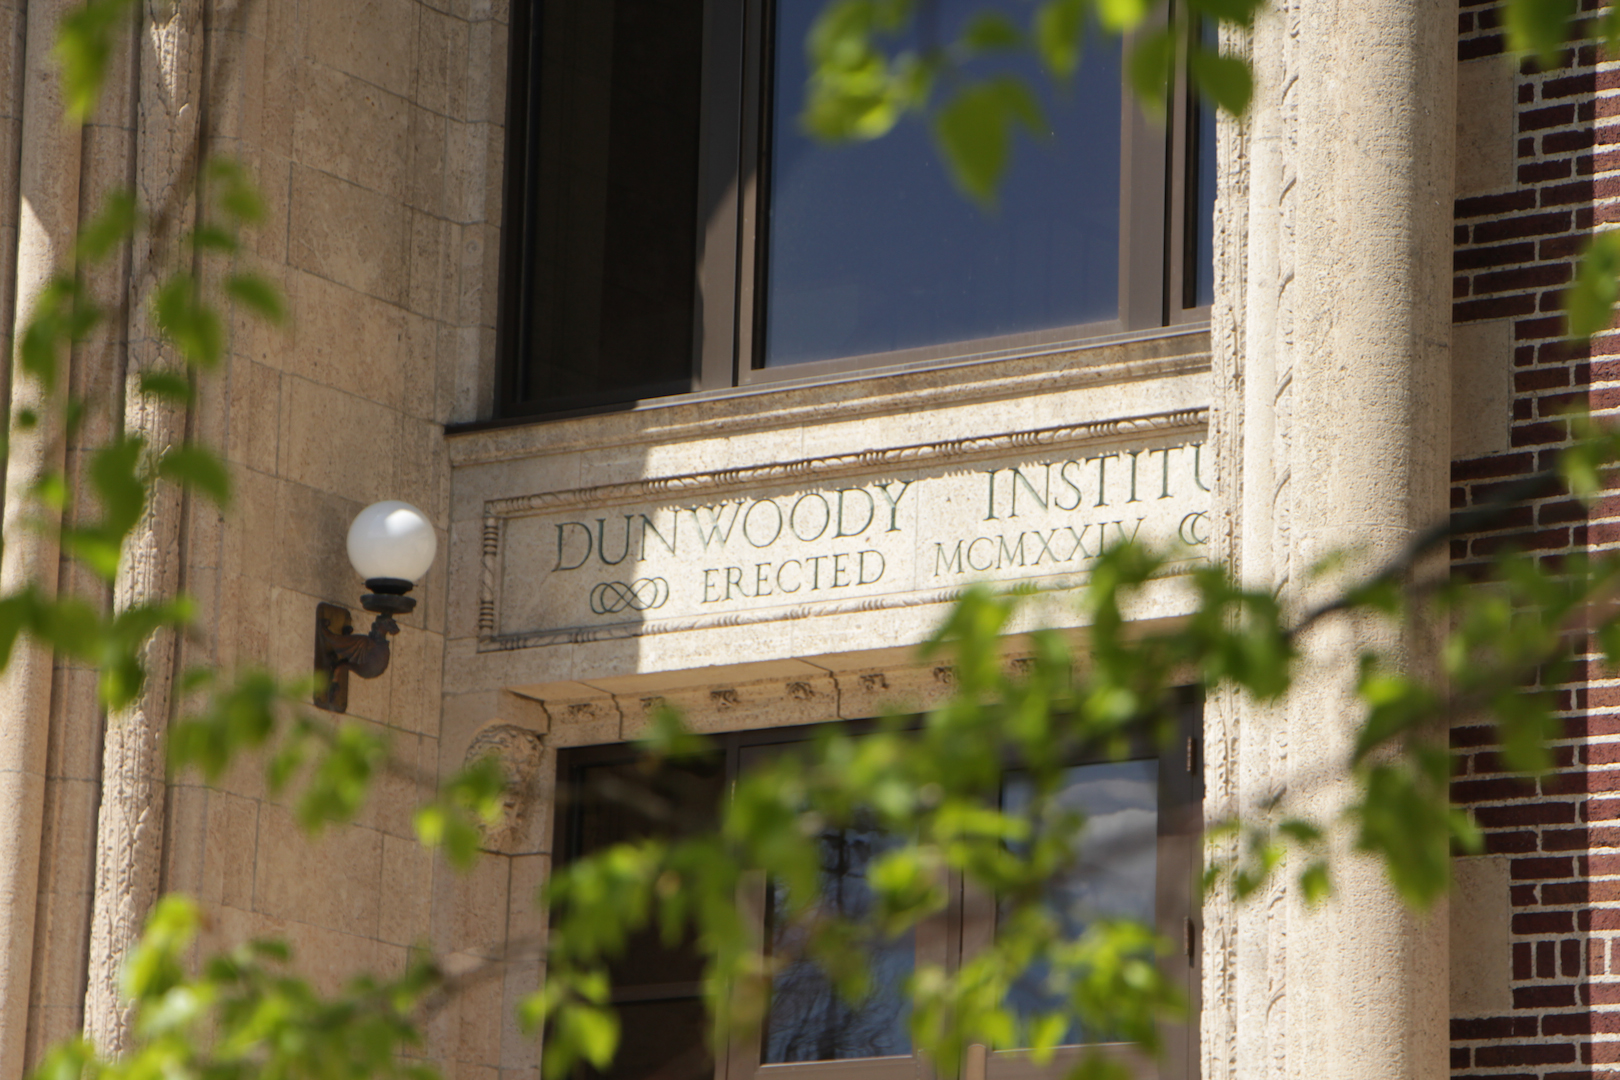 Dunwoody College of Technology - Experience the hands-on, high-tech learning environment that produces today's top technicians, engineers and leaders in the fields of engineering, robotics, electronics, manufacturing, 3D printing, IT, construction, architecture and design. Explore the labs, shops and studios housing the latest technologies at the only private, nonprofit technical college in the region.